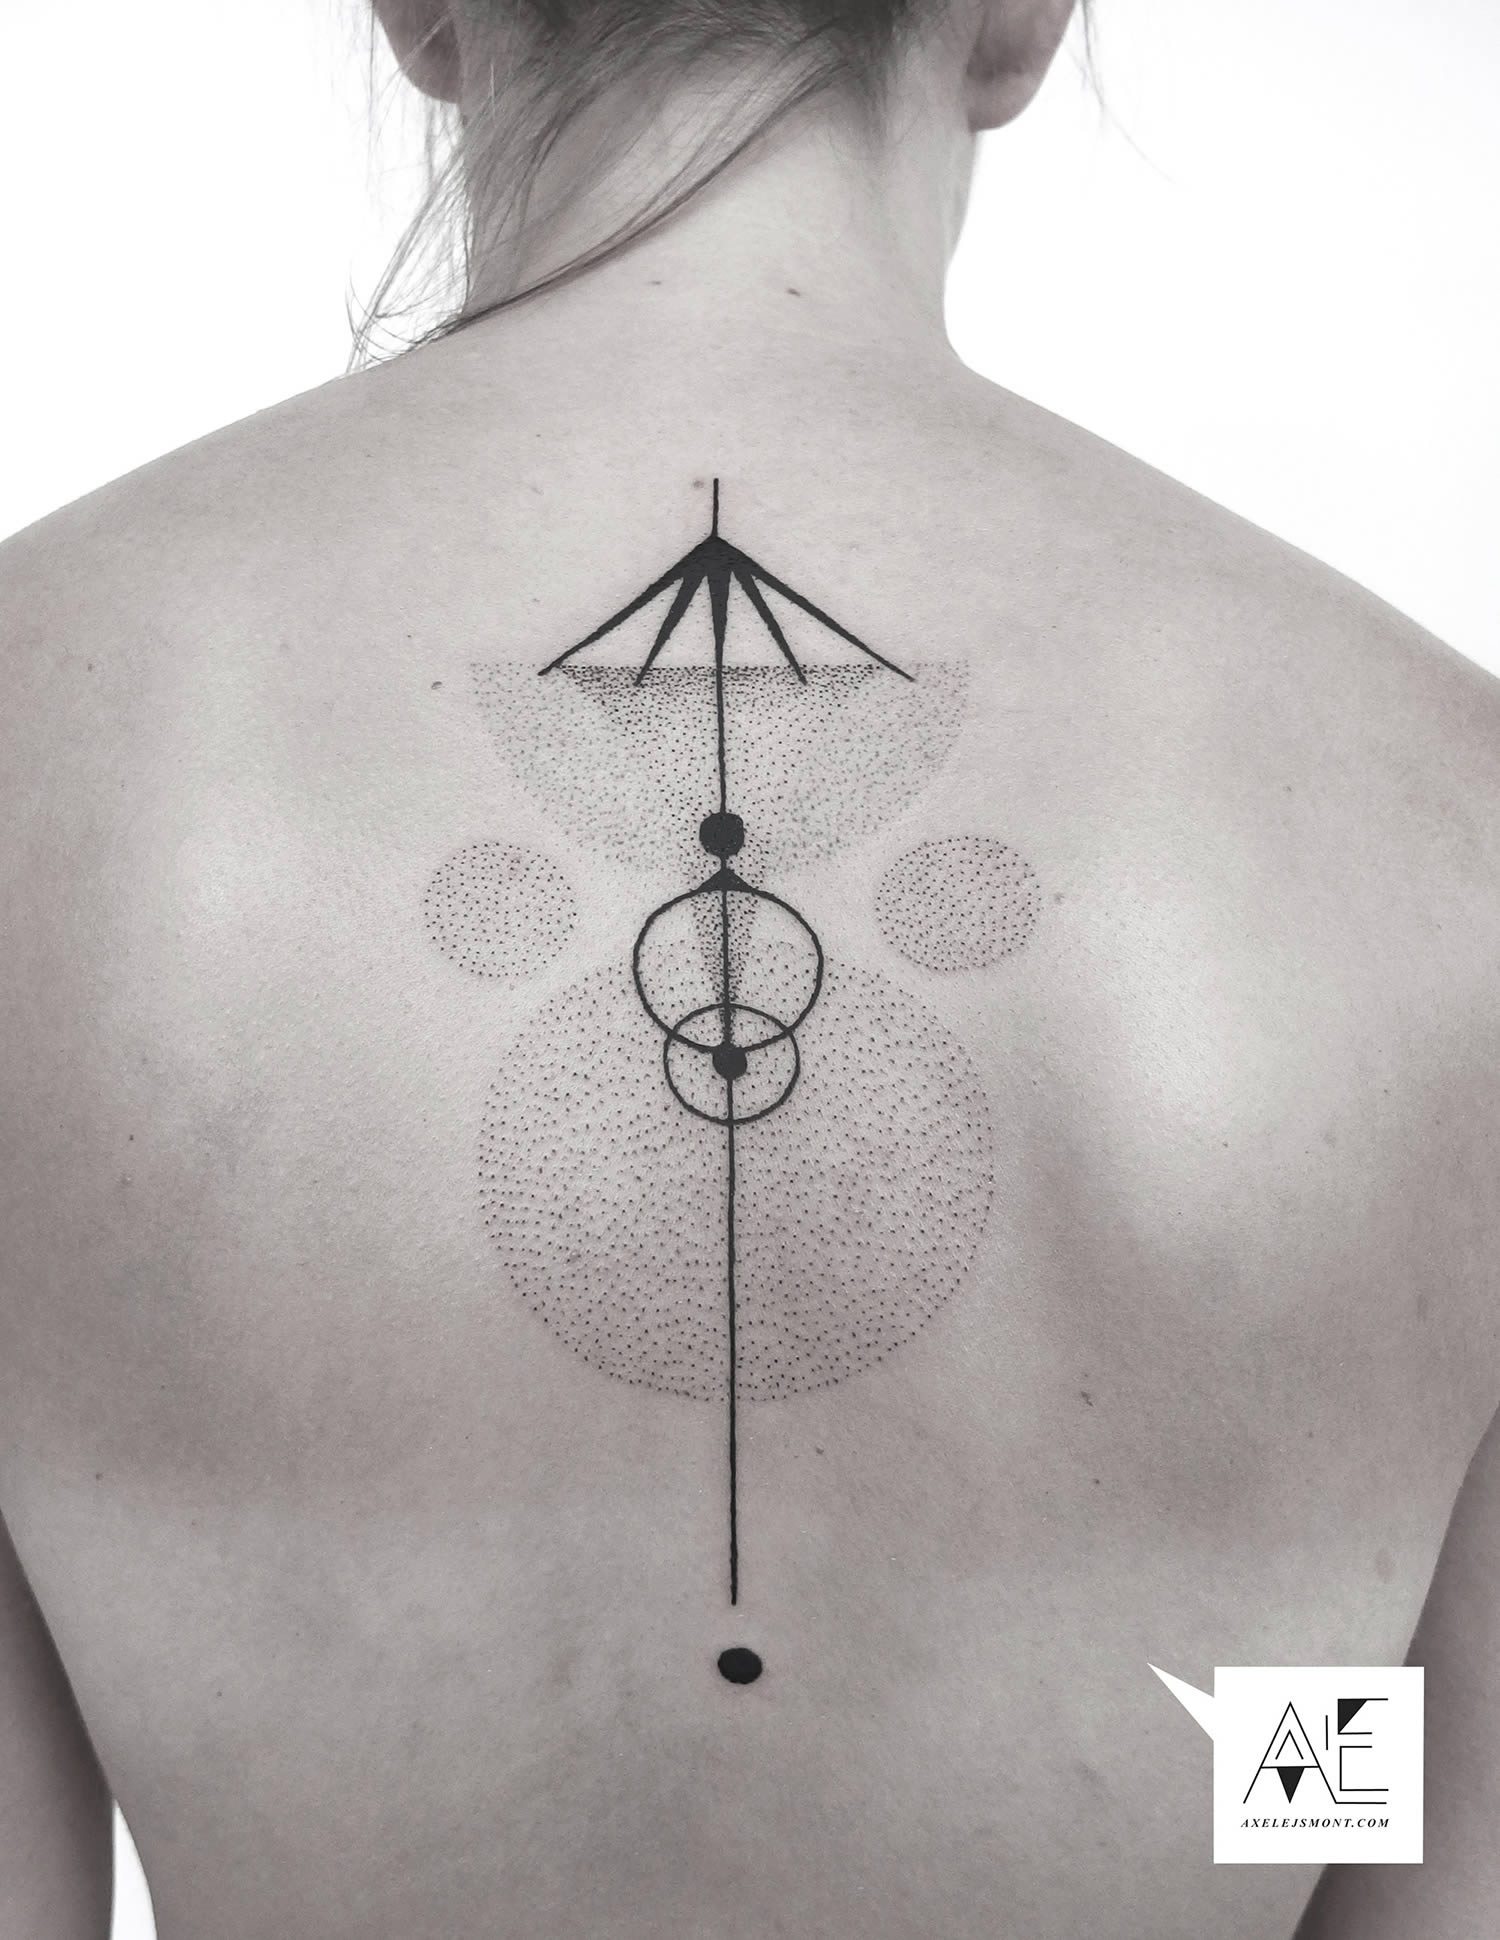 back tattoo, dots and lines